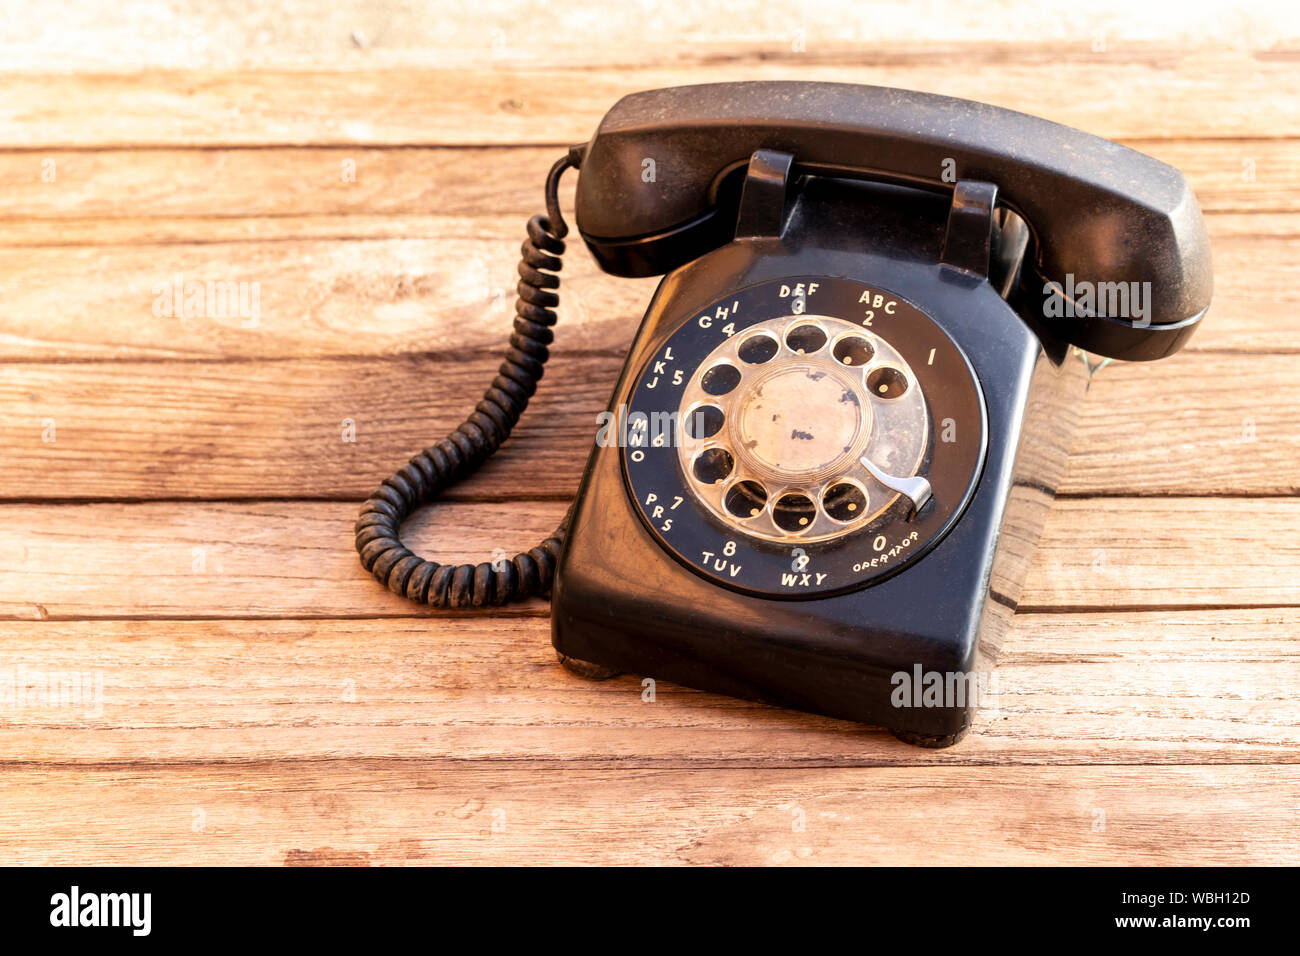 Retro rotary black telephone on wood table background. Old telephone with rotary dial. Stock Photo